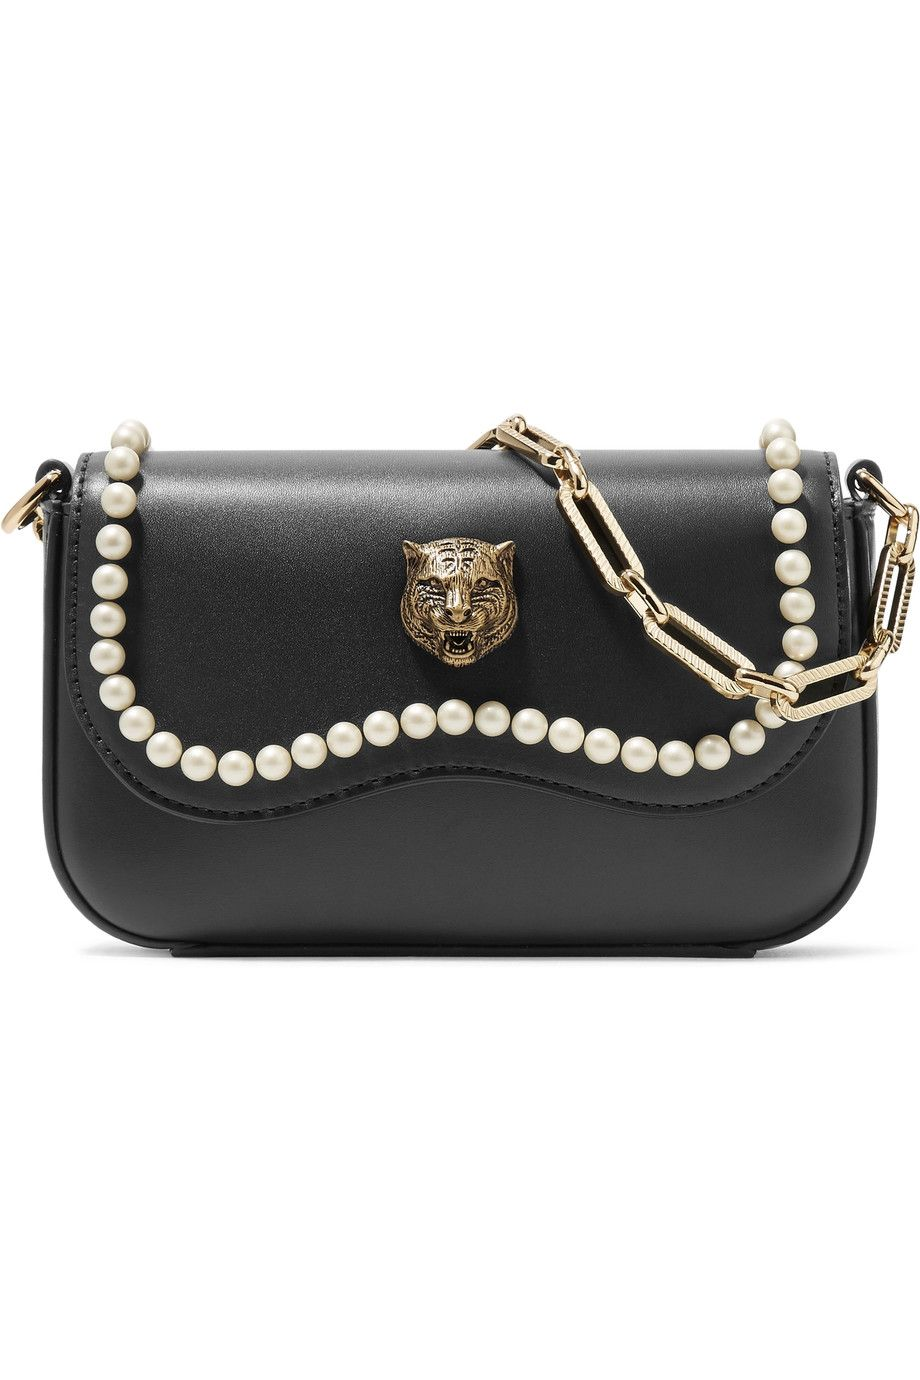 5b073b0542a GUCCI Broadway mini embellished leather shoulder bag